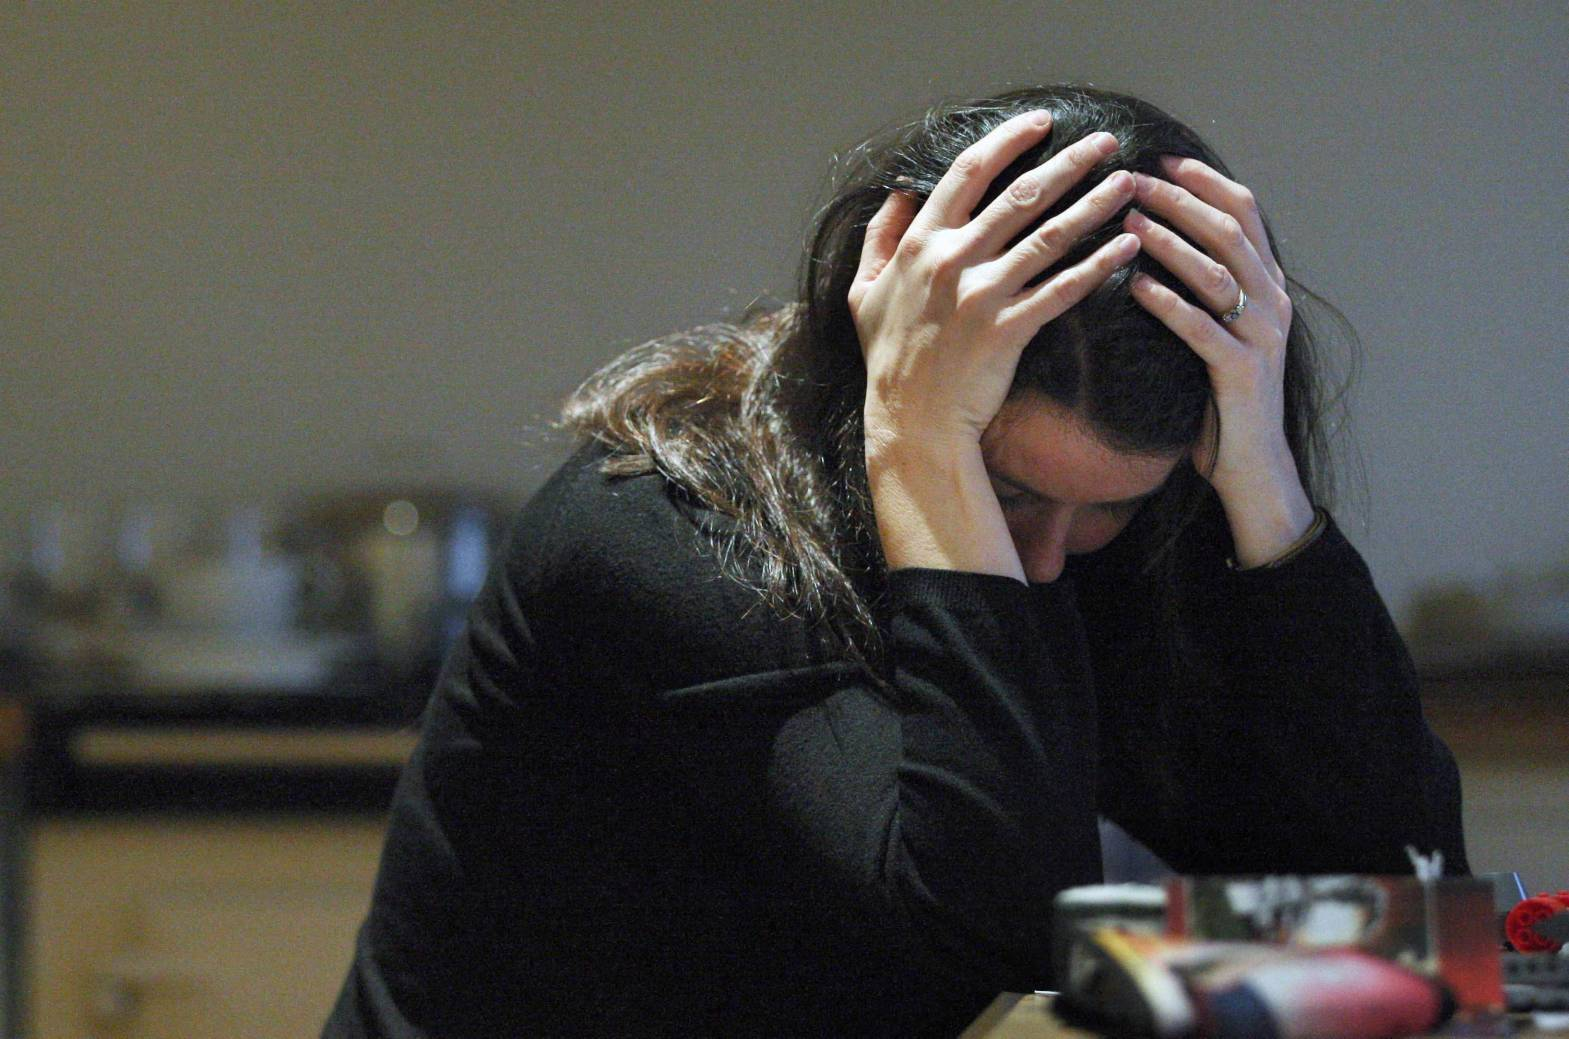 The stress of being in debt can prompt other health issues